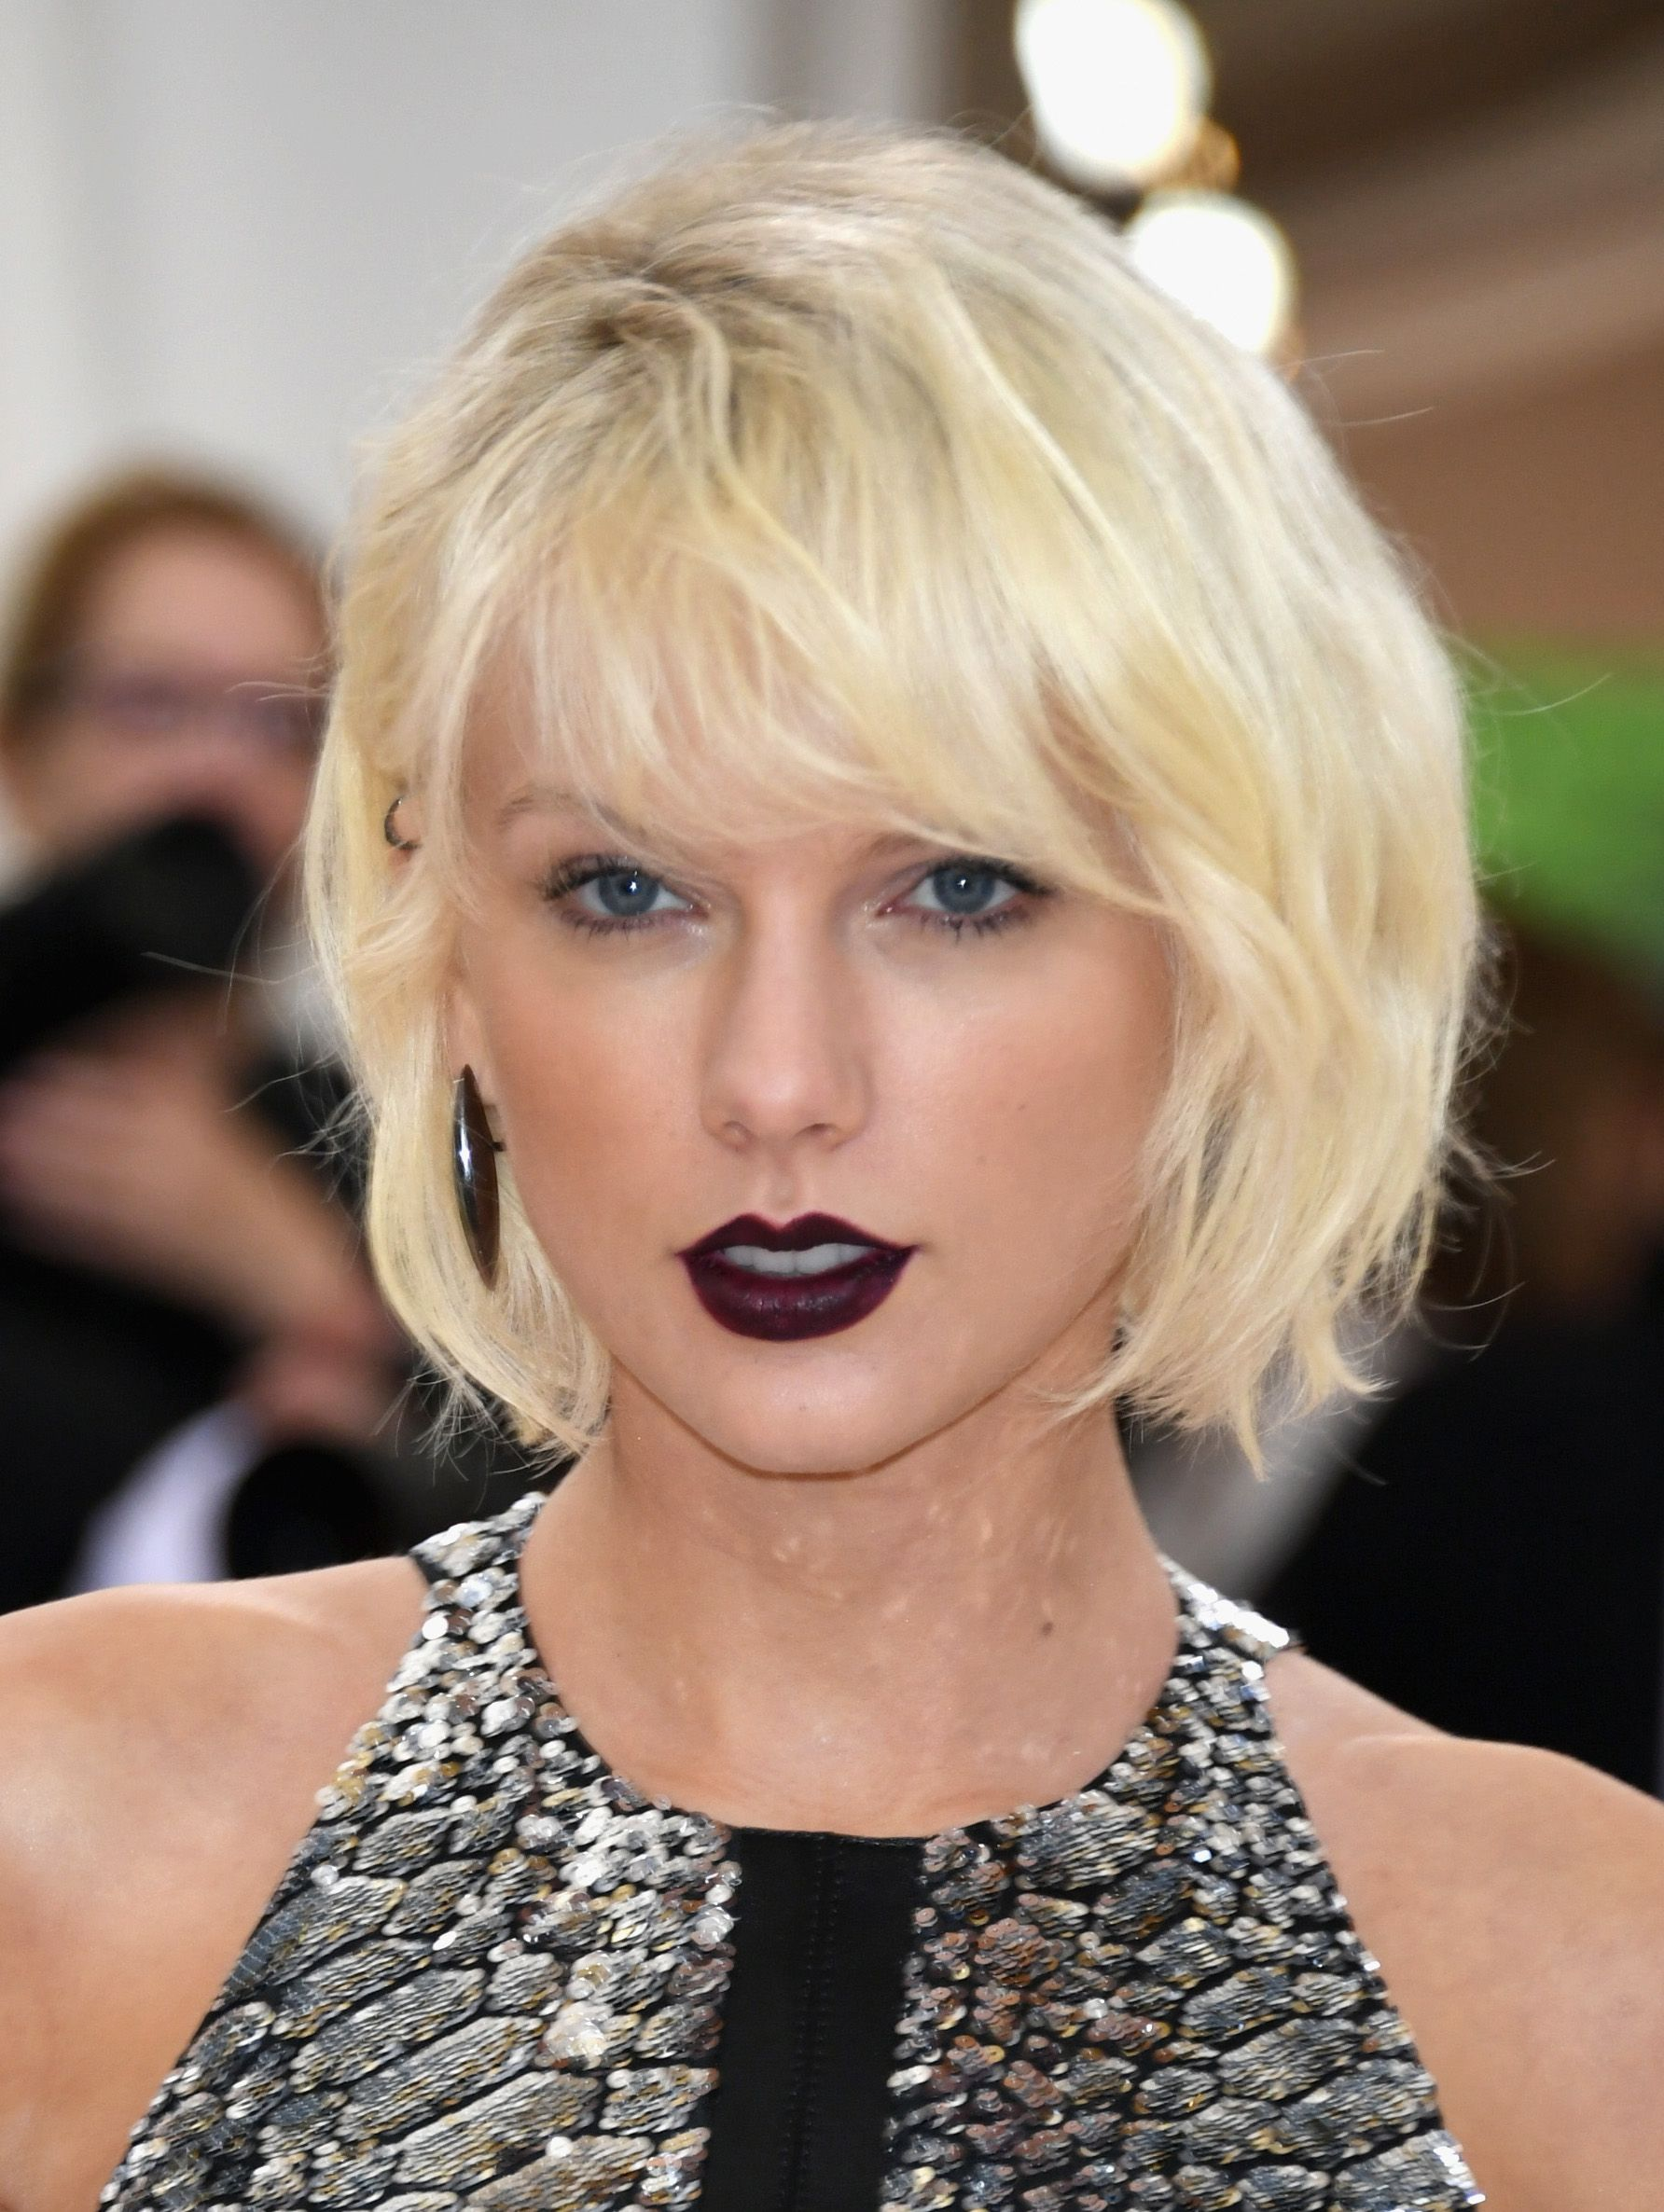 Taylor Swift Says She 'Couldn't Have Asked For A Better Year' And The Internet Is Furious